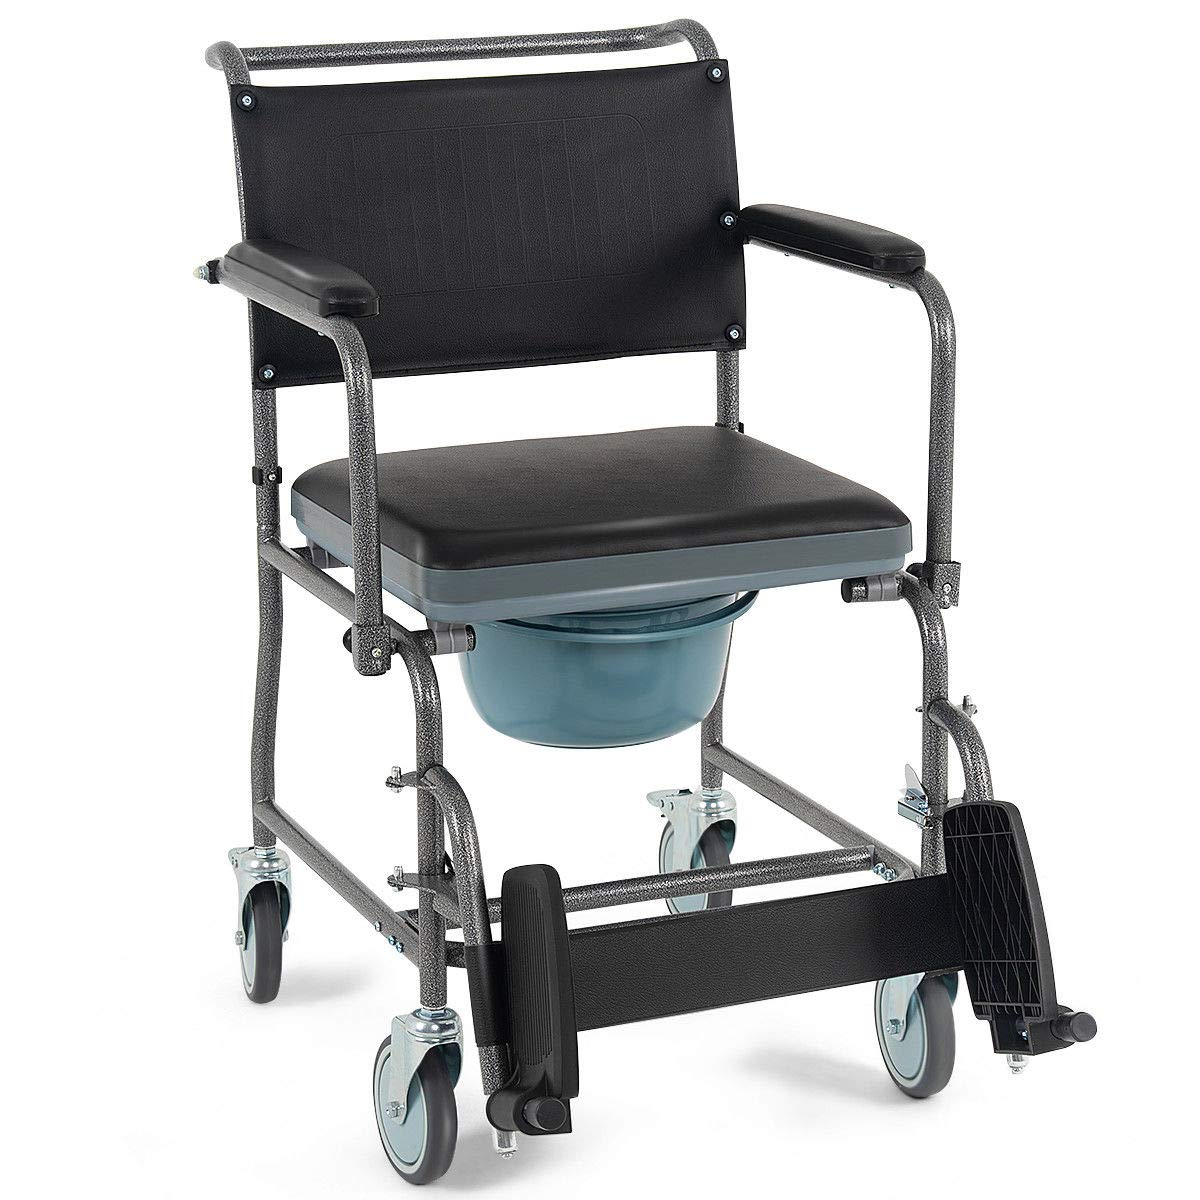 Giantex Medical Transport Toilet Commode Bathroom Wheelchair Bedside Locking Casters Patient Commode Wheel Chair Over Toilet (Black) by Giantex